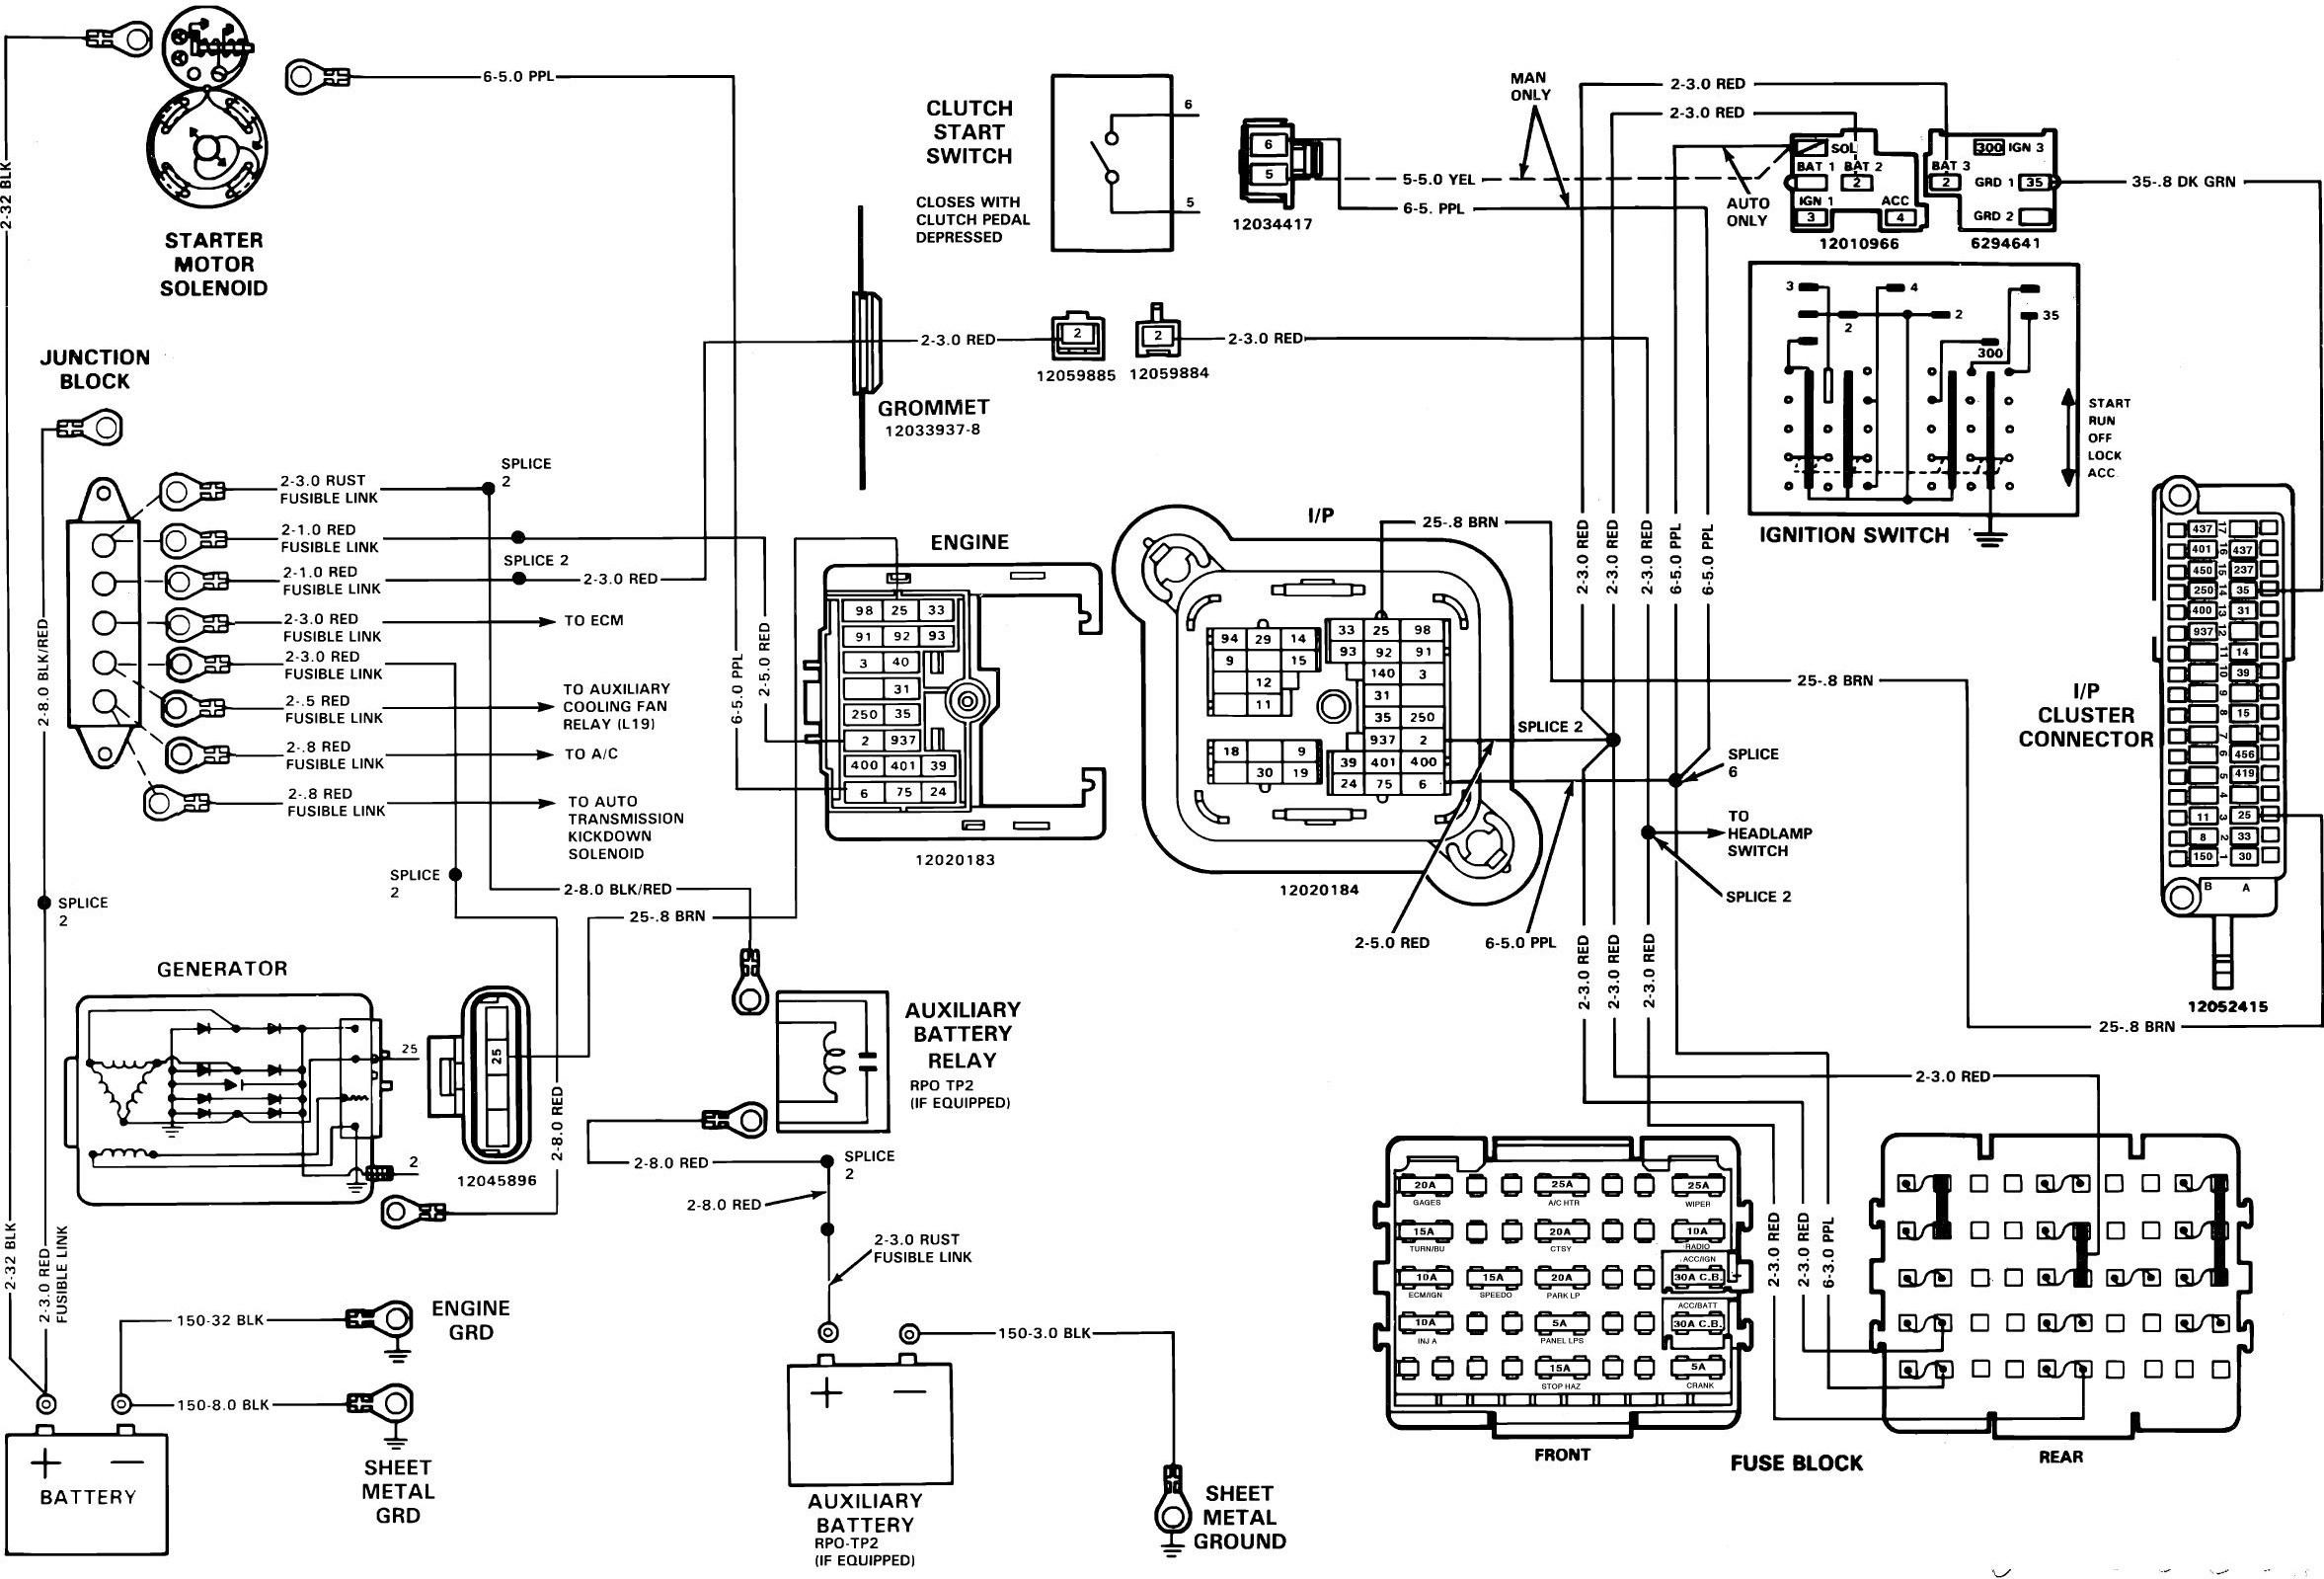 7d801 Jaguar Xj8 Engine Diagram